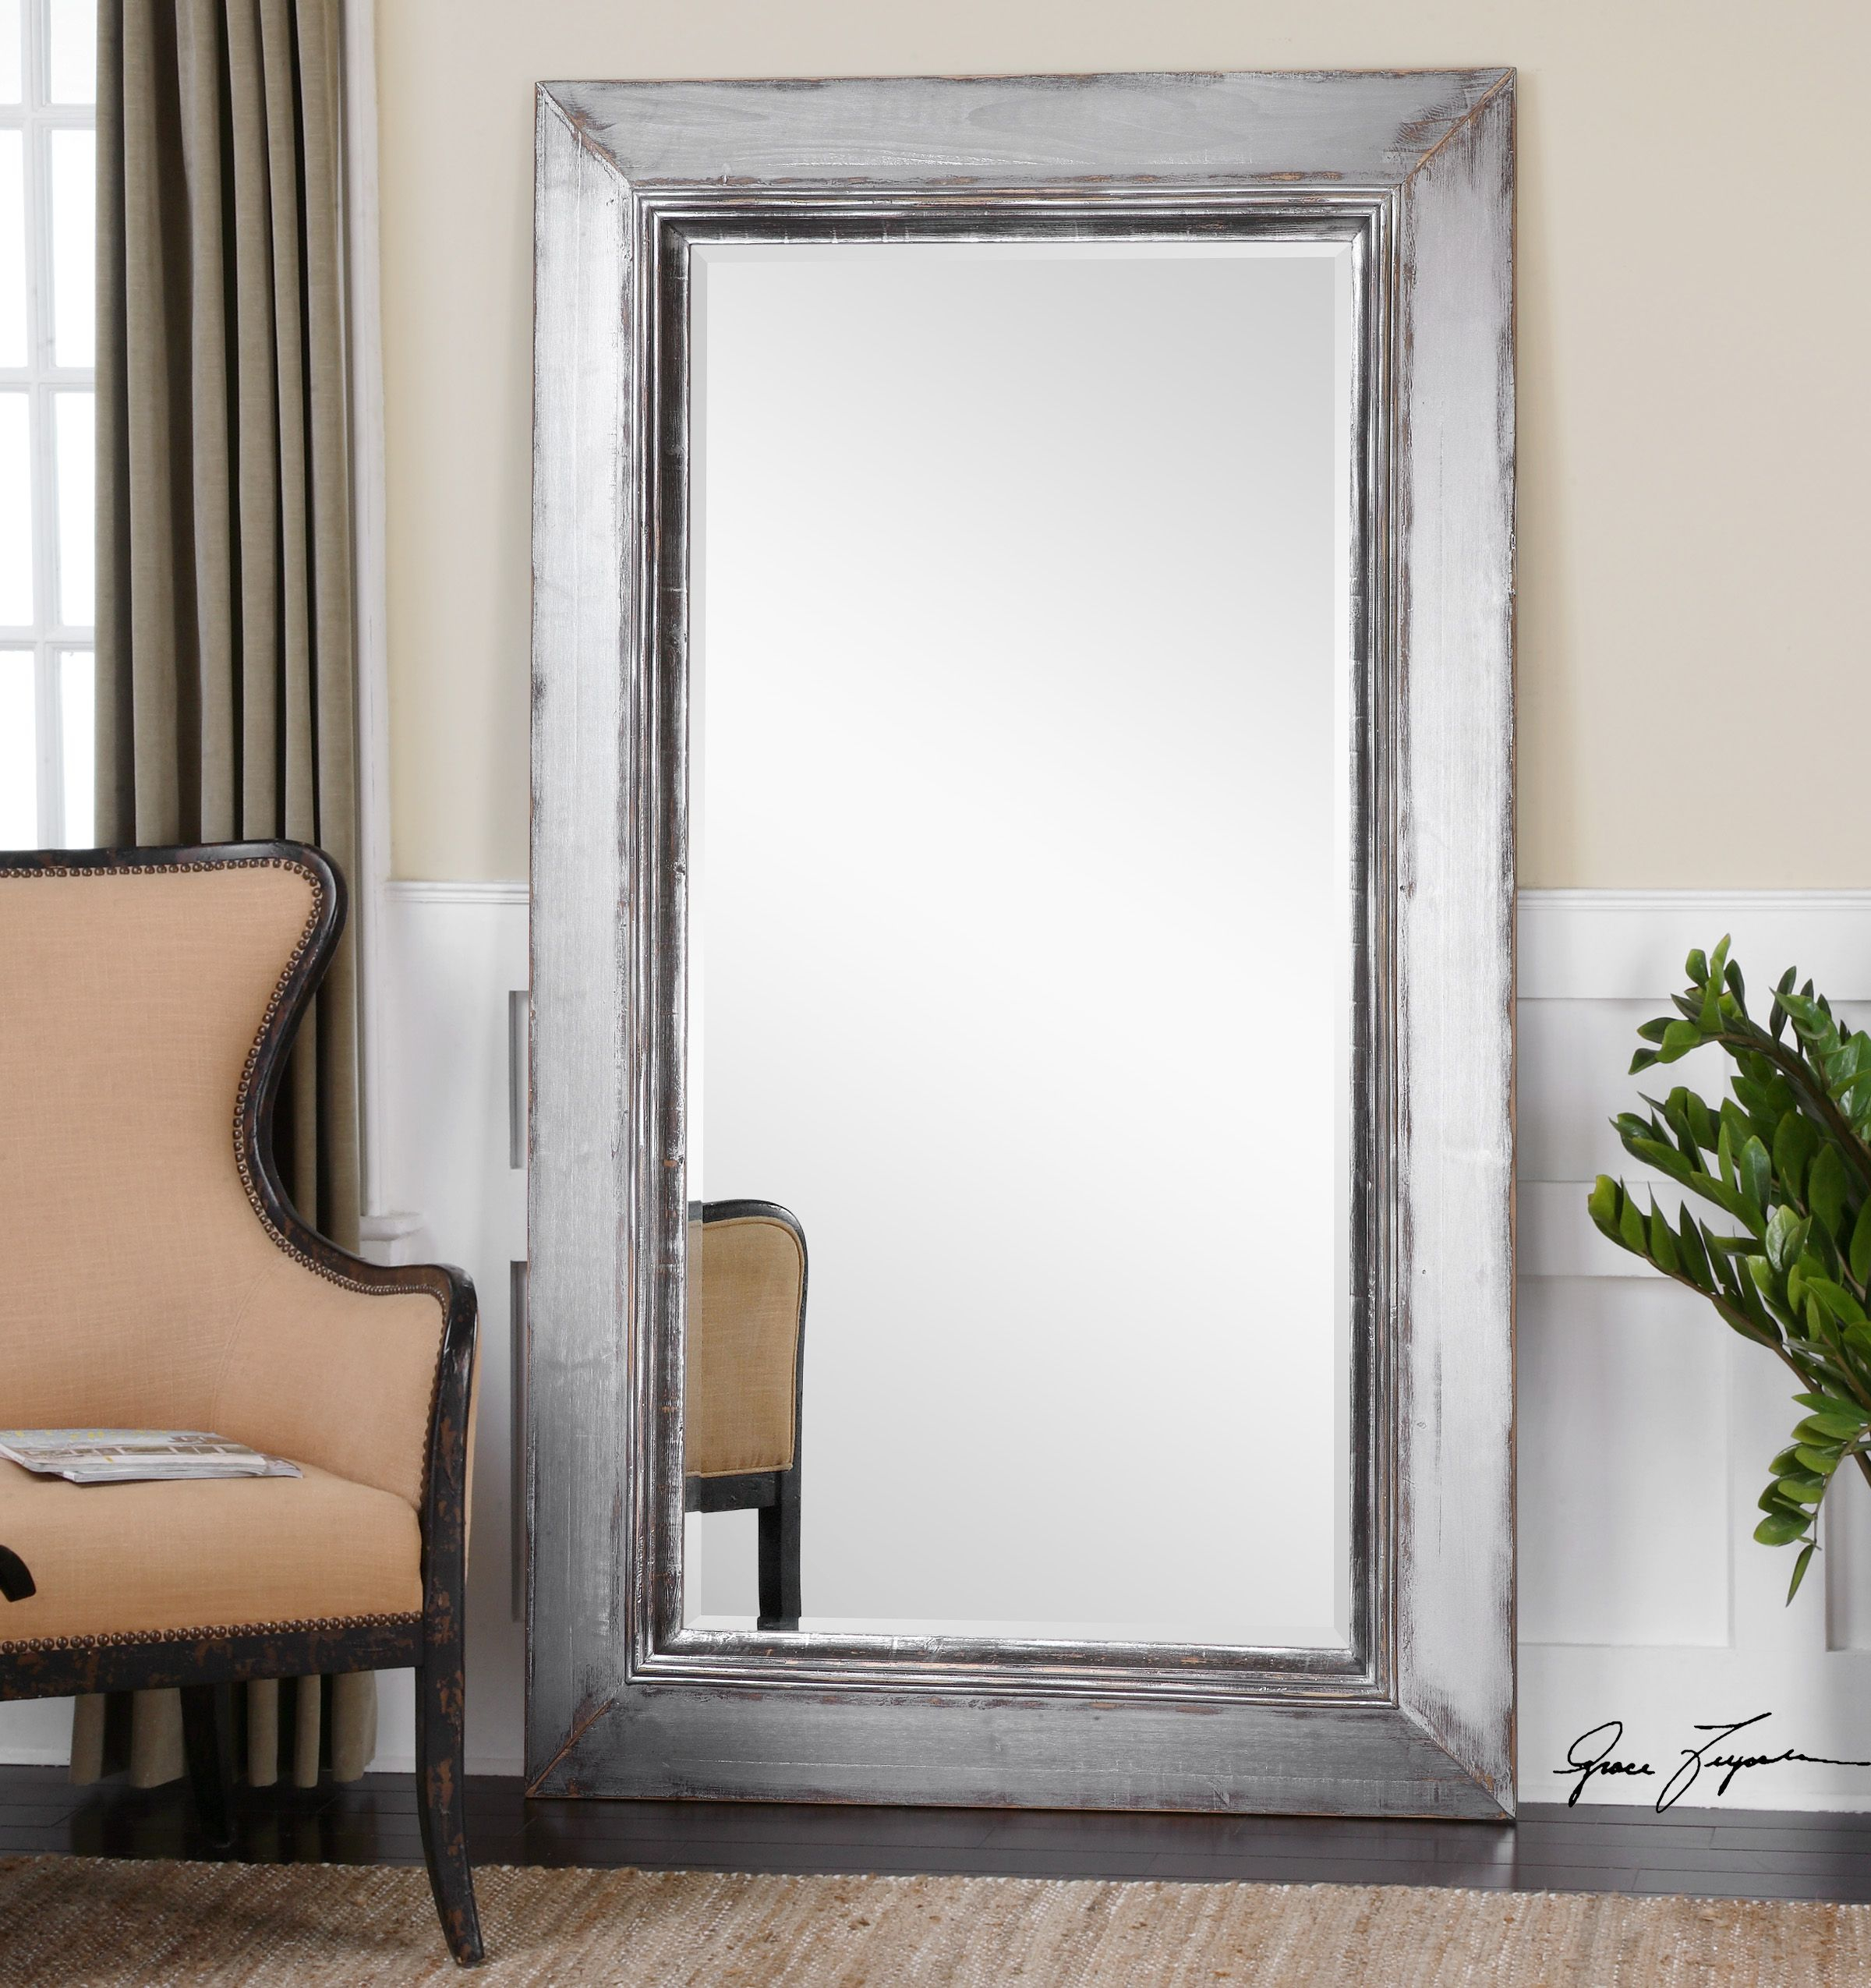 How To Secure A Leaning Mirror Intended For Leaning Mirrors (View 9 of 30)